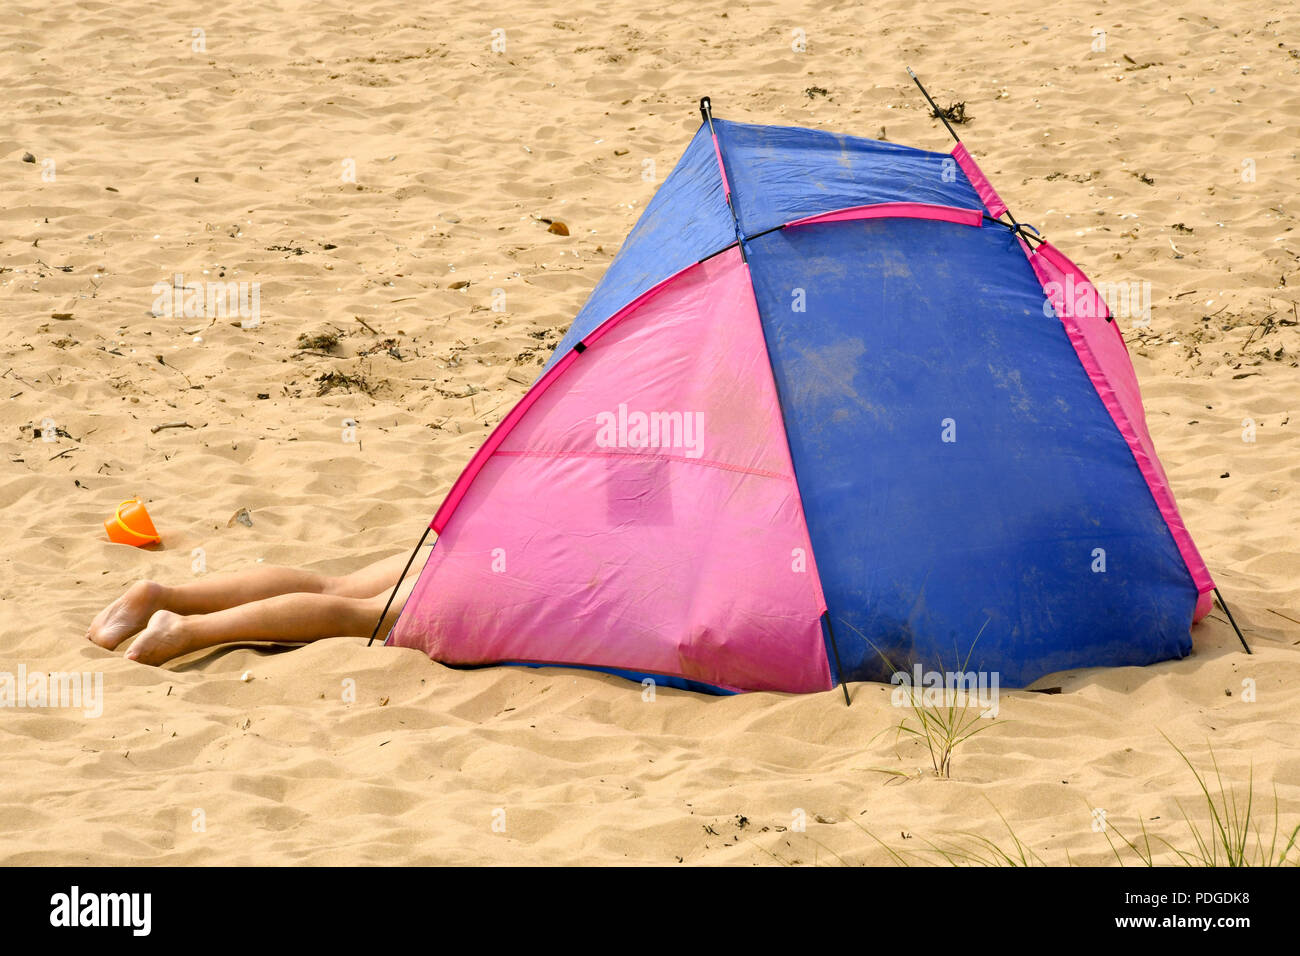 Person lying on a sandy beach partly in a tent with legs sticking out - Stock Image